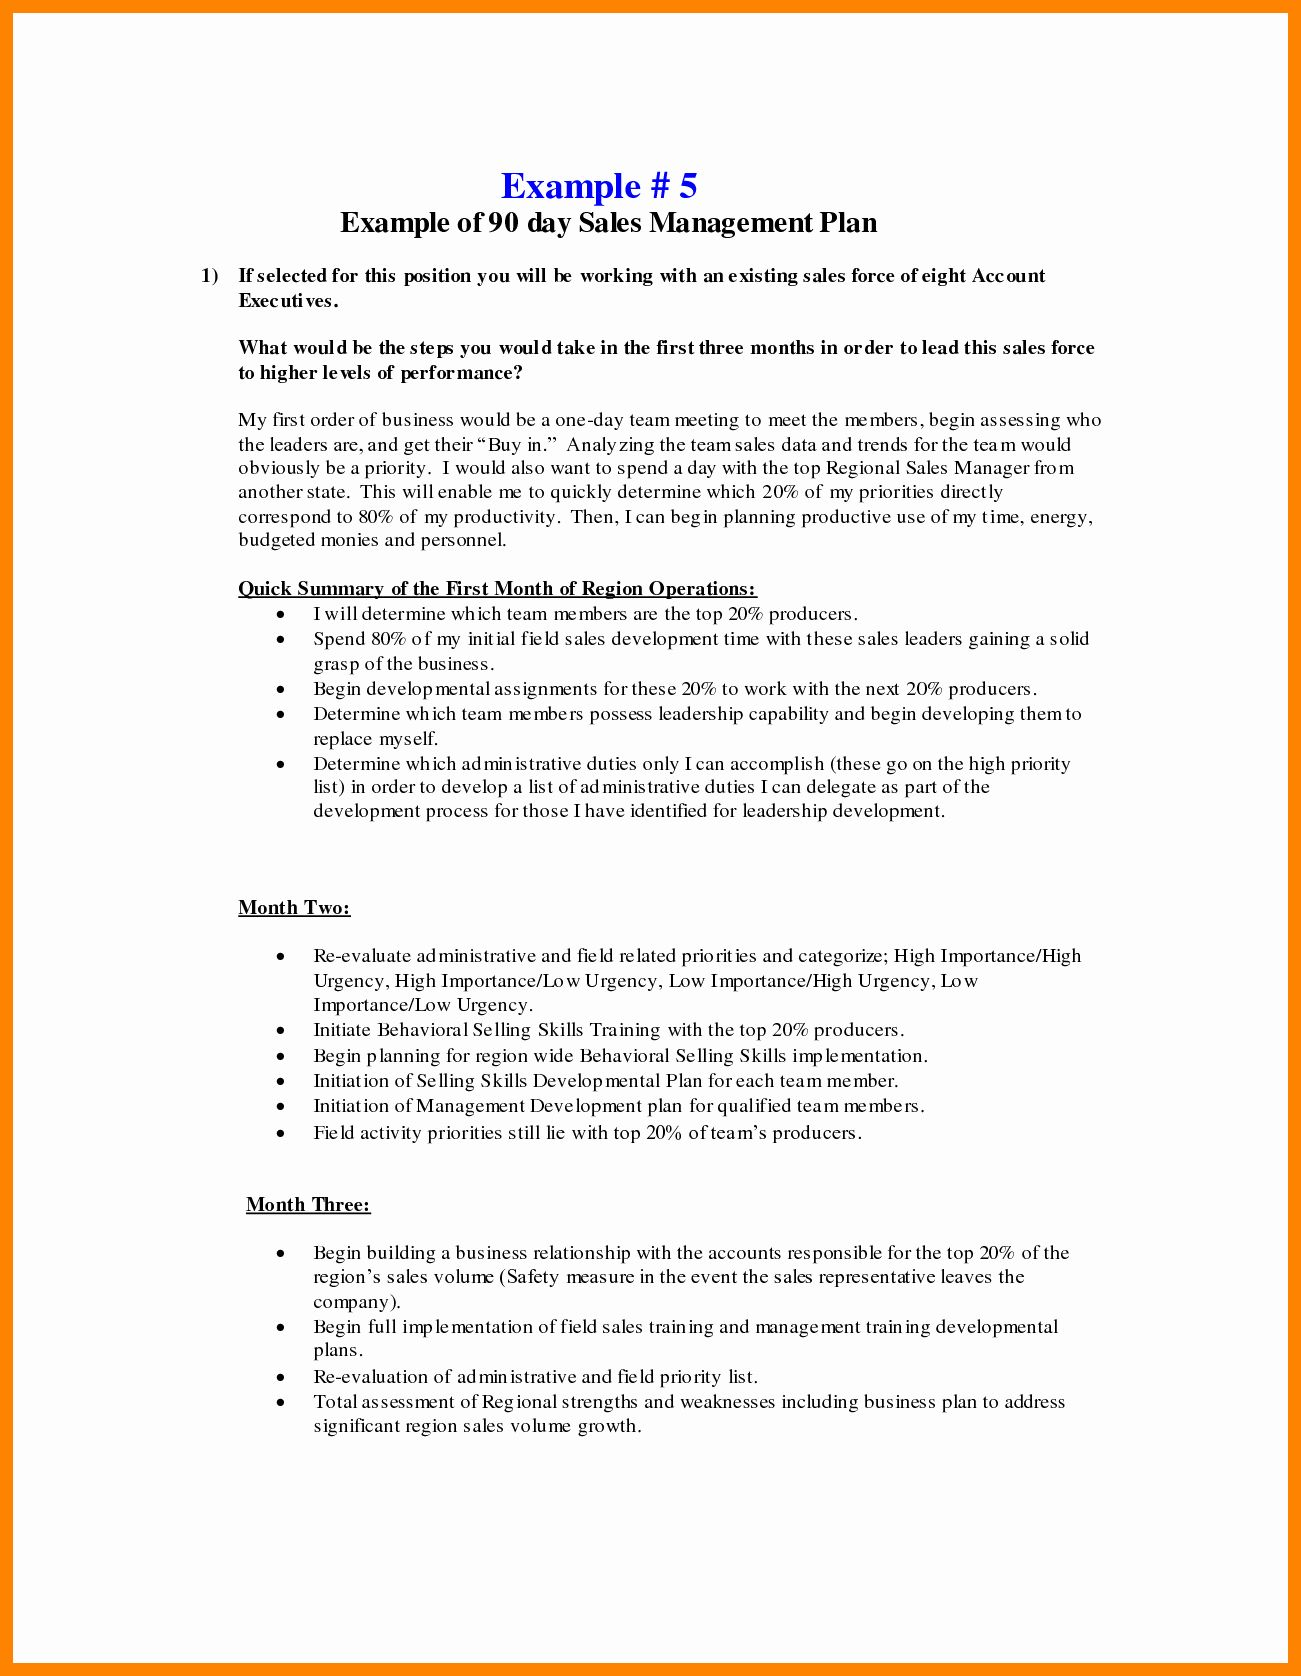 Pin By Em Codes On Career Business Plan Template Free Business Plan Example Business Plan Template Sales rep business plan template